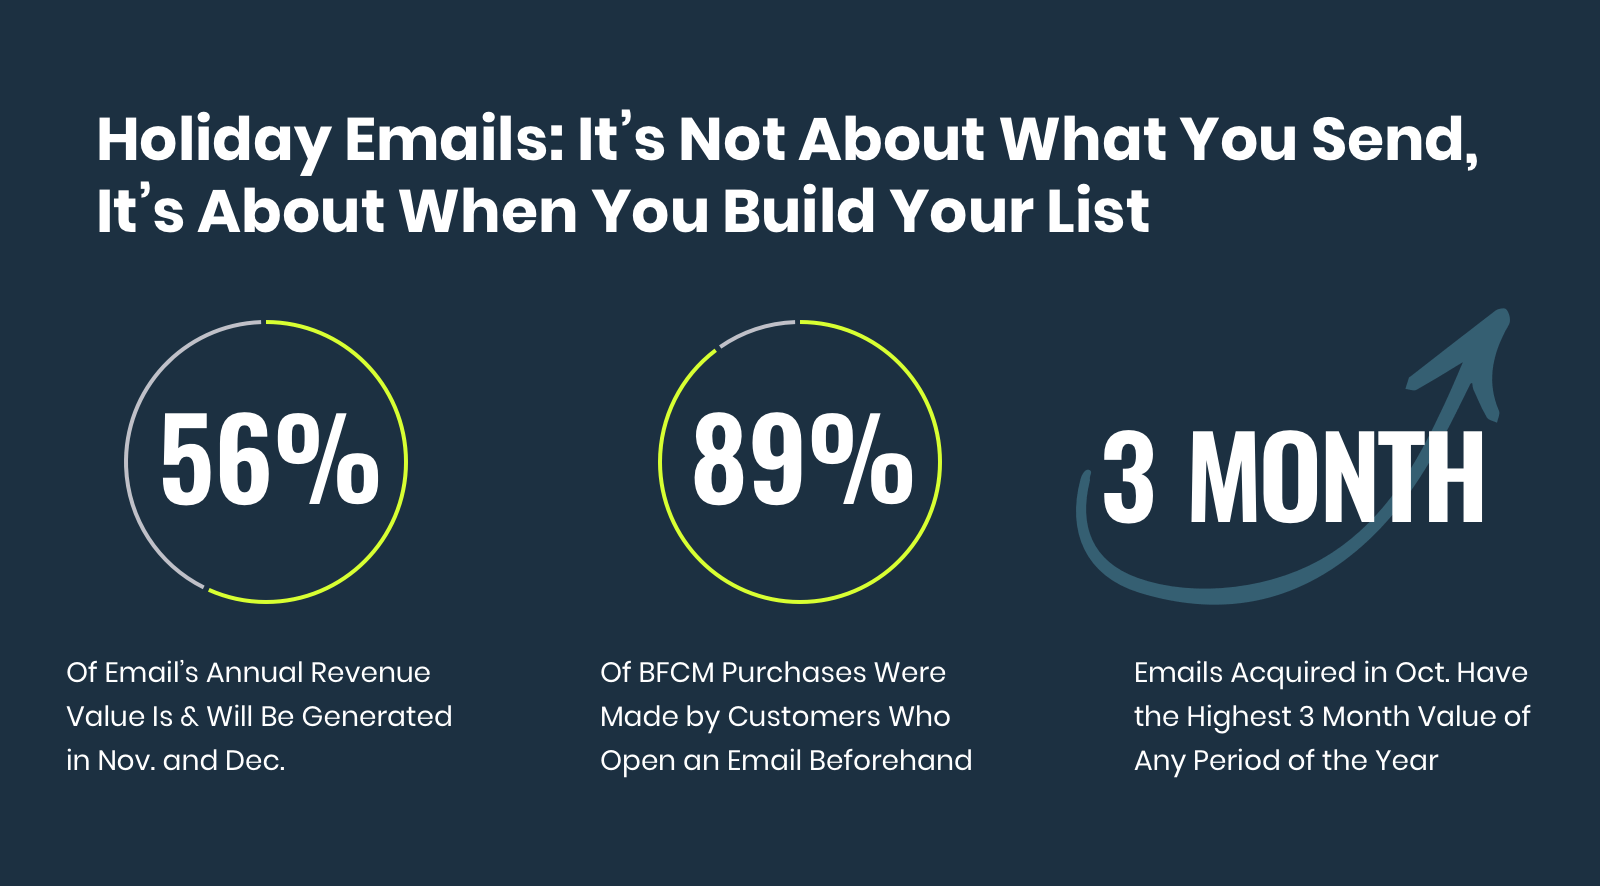 Holiday Email Value: It's not about what you send, it's about when you build your list